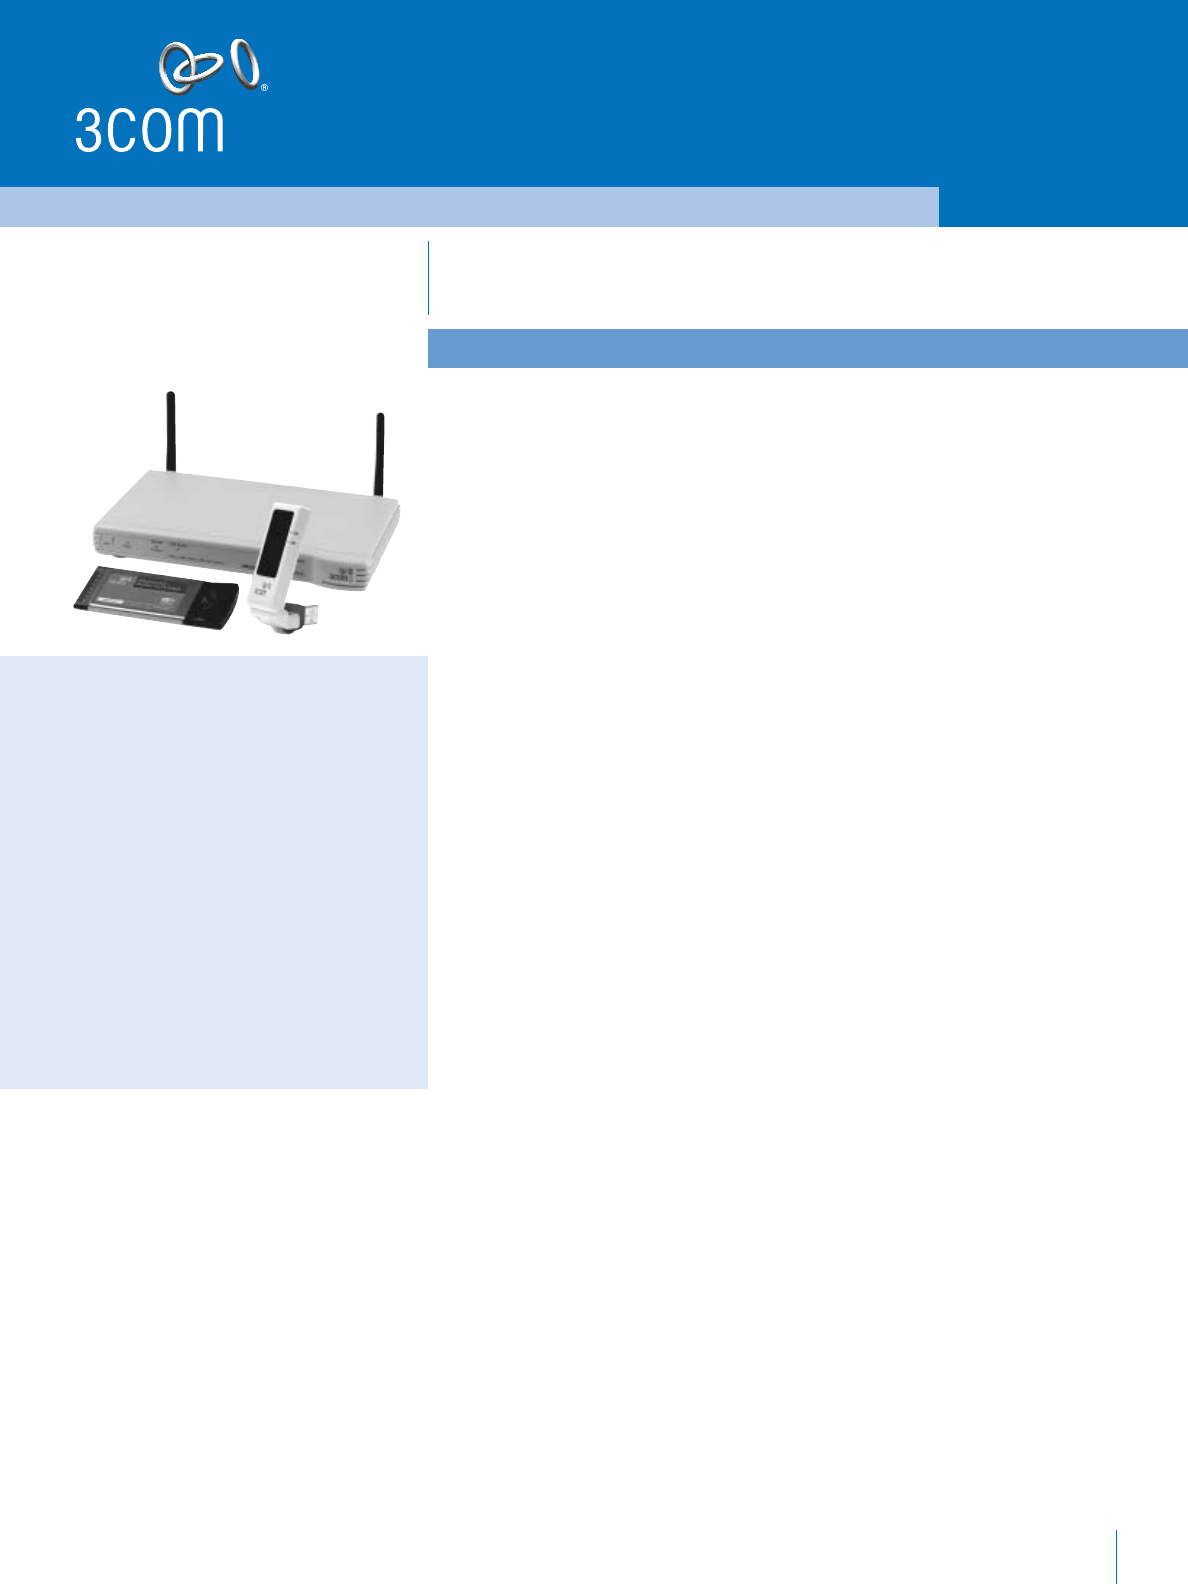 3COM OFFICECONNECT USB ADAPTER WINDOWS 10 DRIVERS